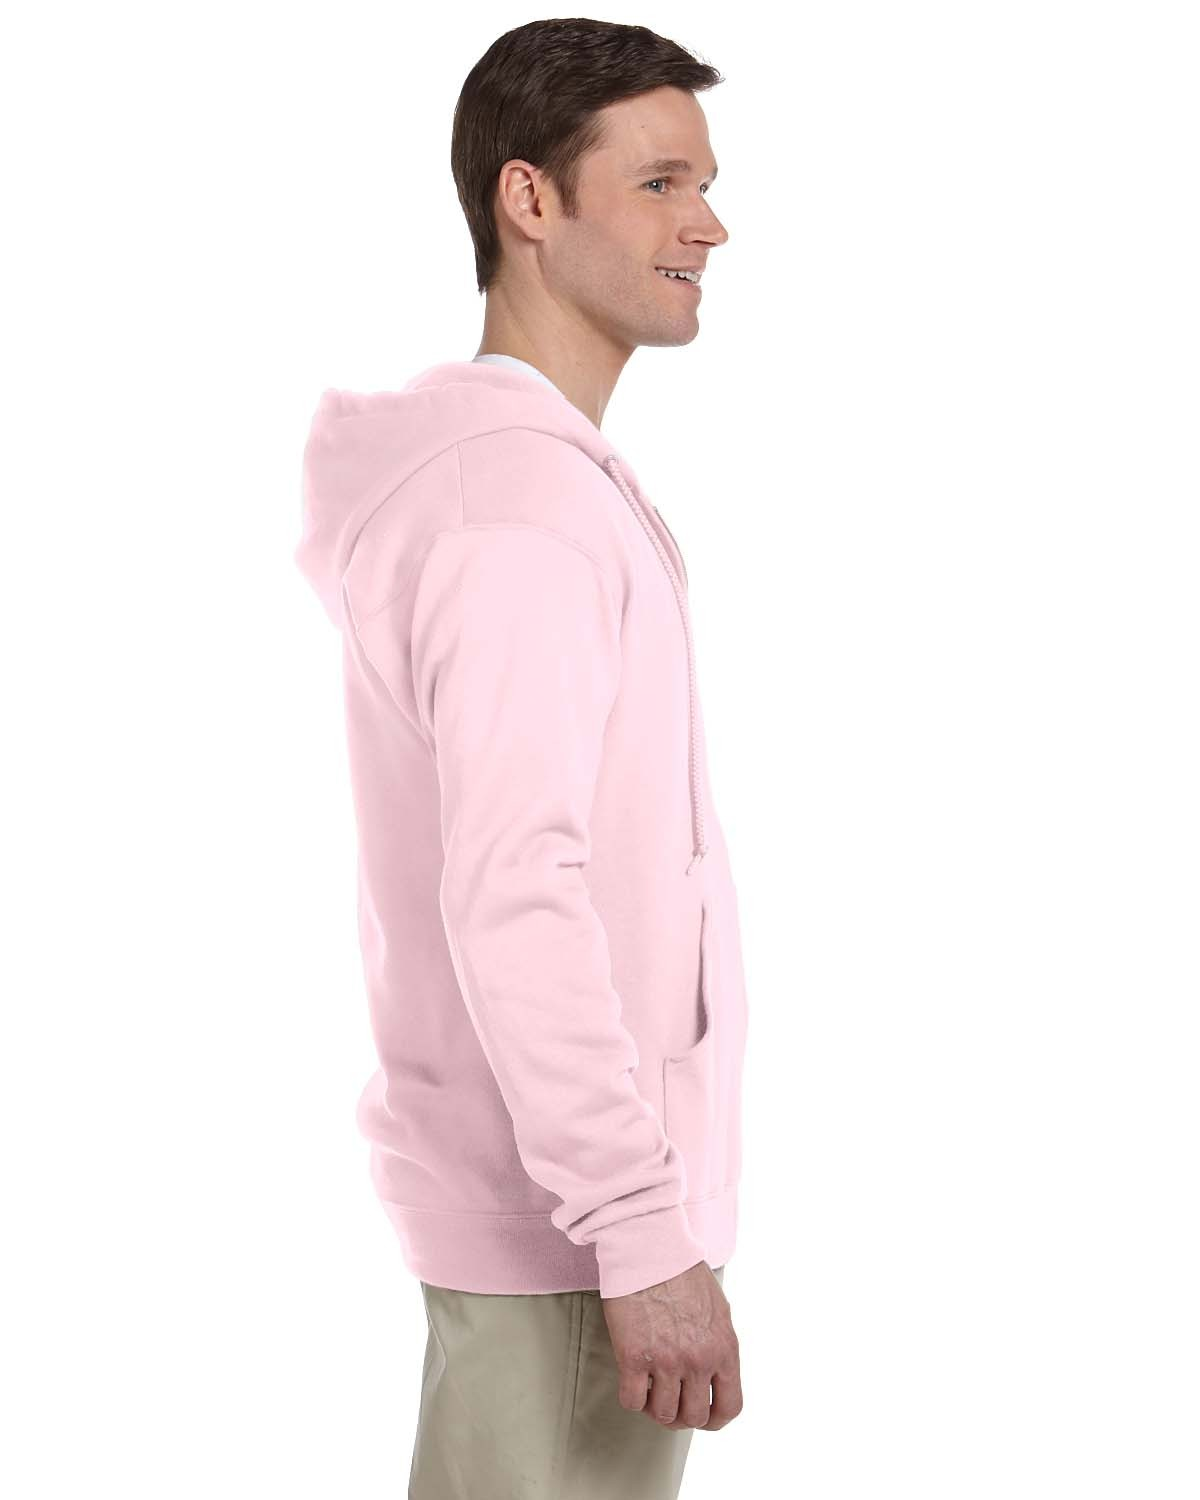 993 Jerzees CLASSIC PINK